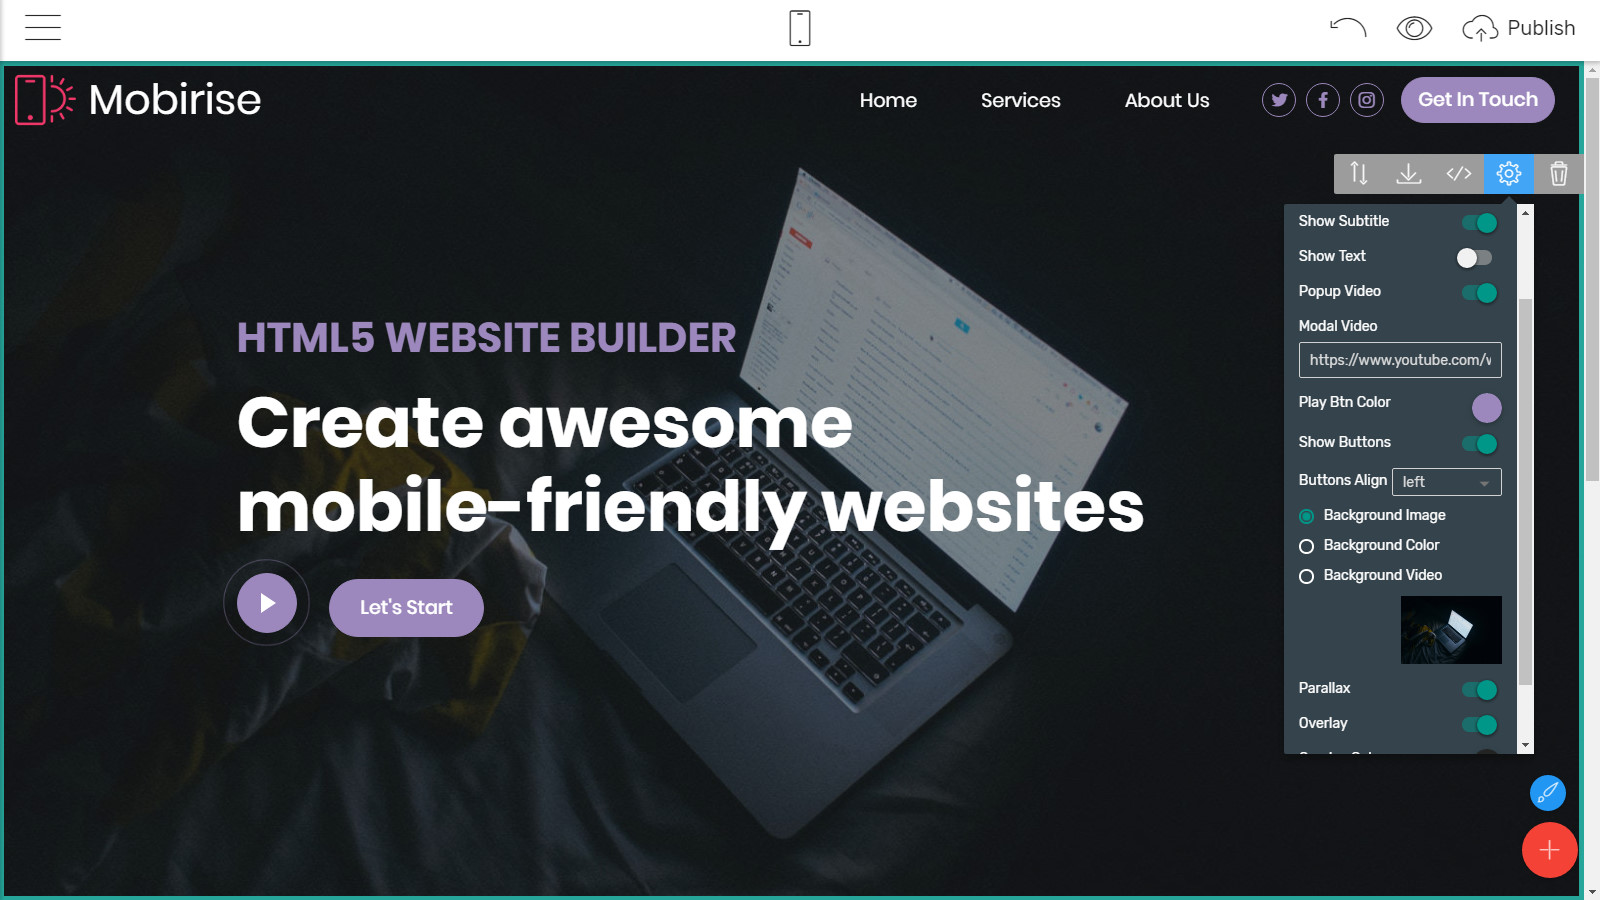 mobile-friendly webpage themes